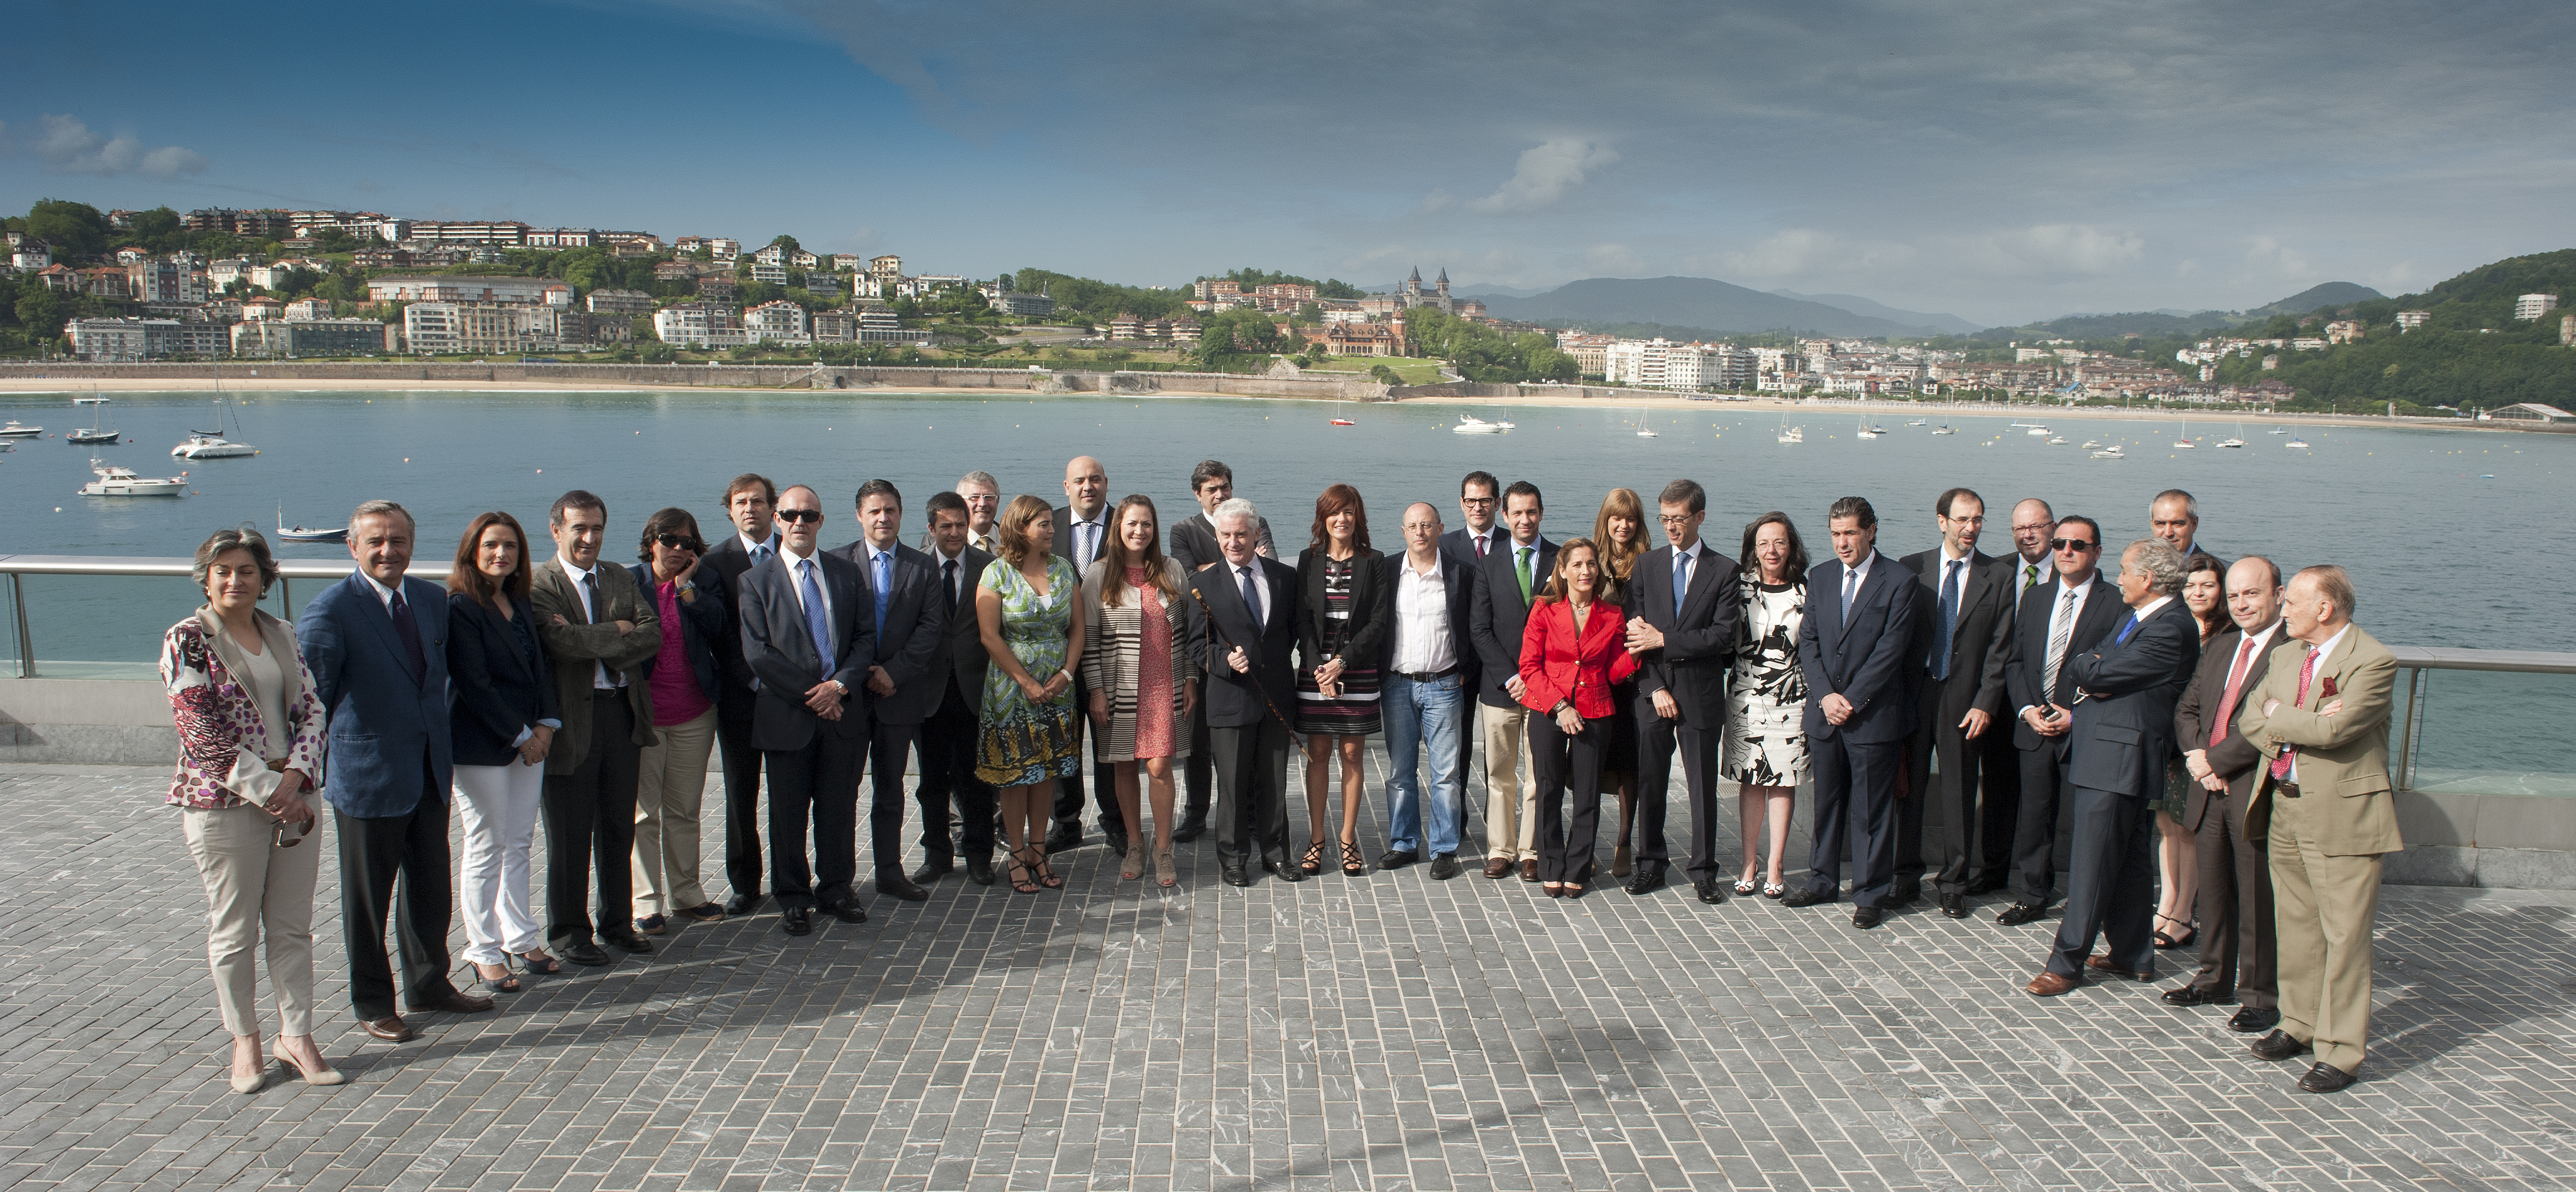 Euskadi recibe por primera vez a los directores generales de Turismo de todas las comunidades autnomas